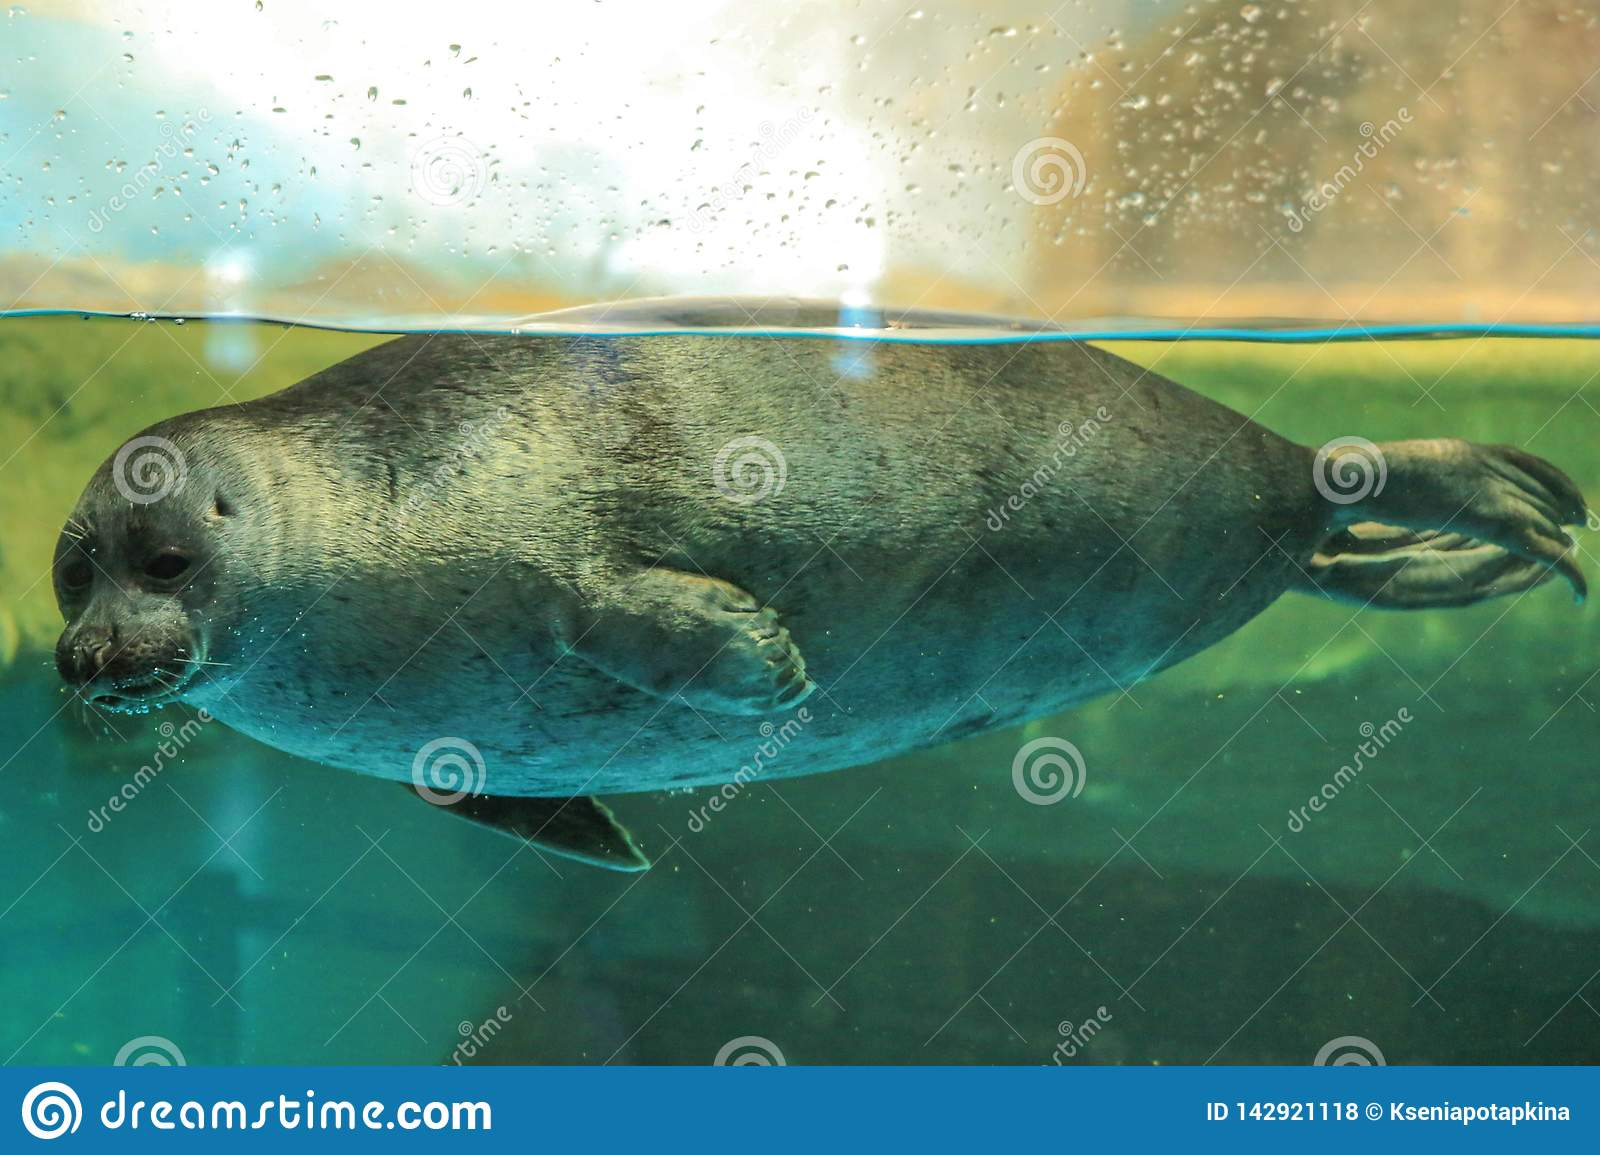 seal floats behind the